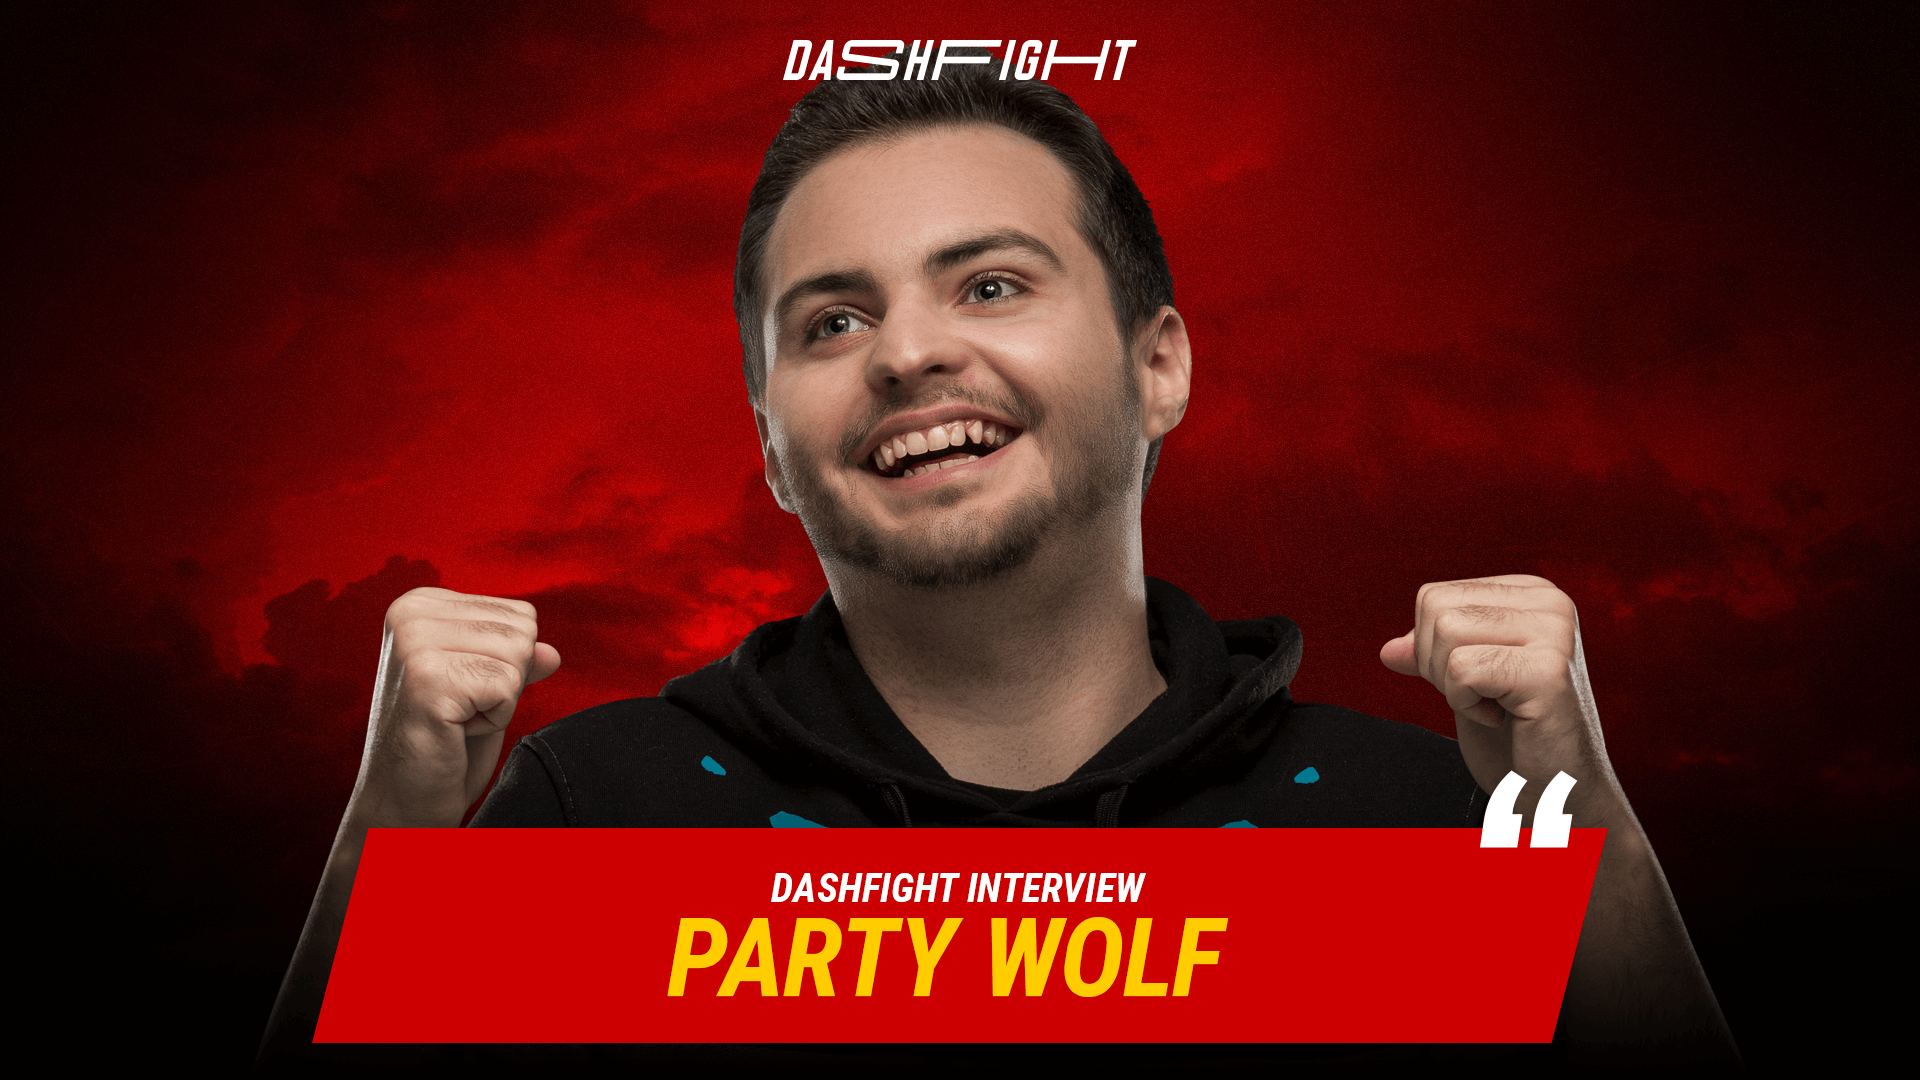 Interview With Party Wolf